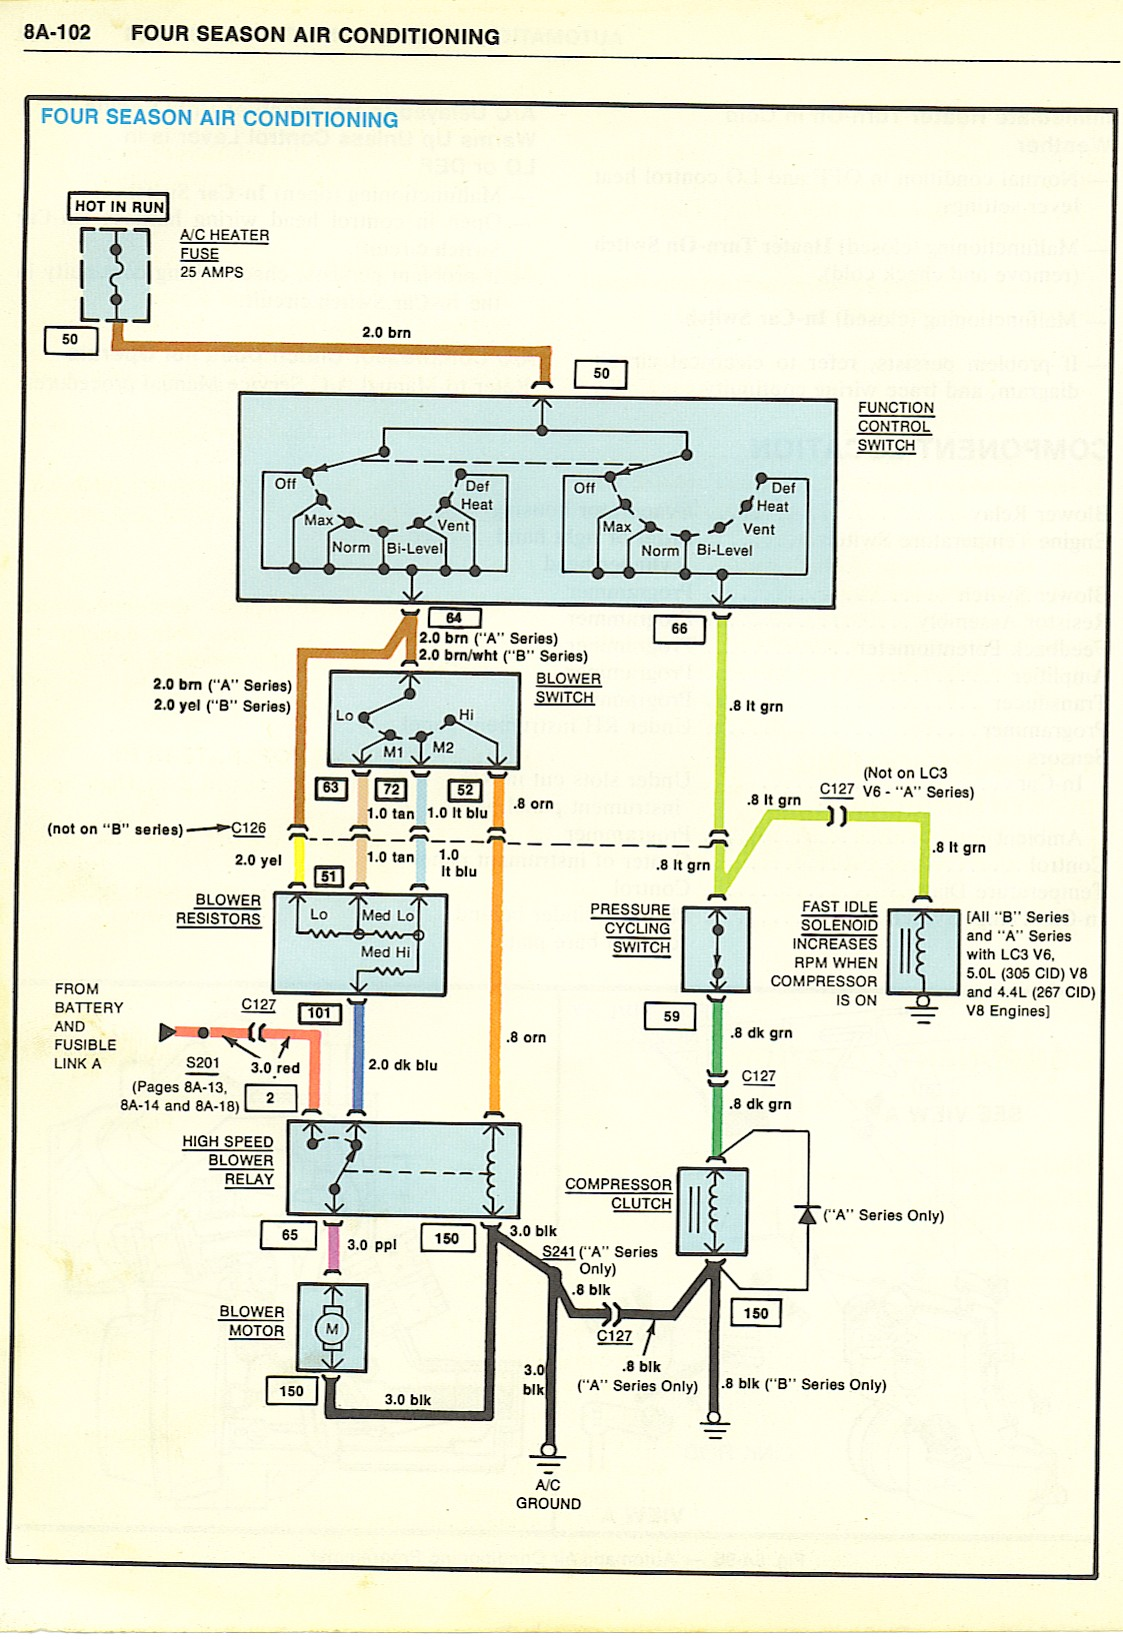 hight resolution of 1972 corvette air conditioning wiring diagram wiring diagram details1980 camaro ac wiring schematic wiring diagram blog